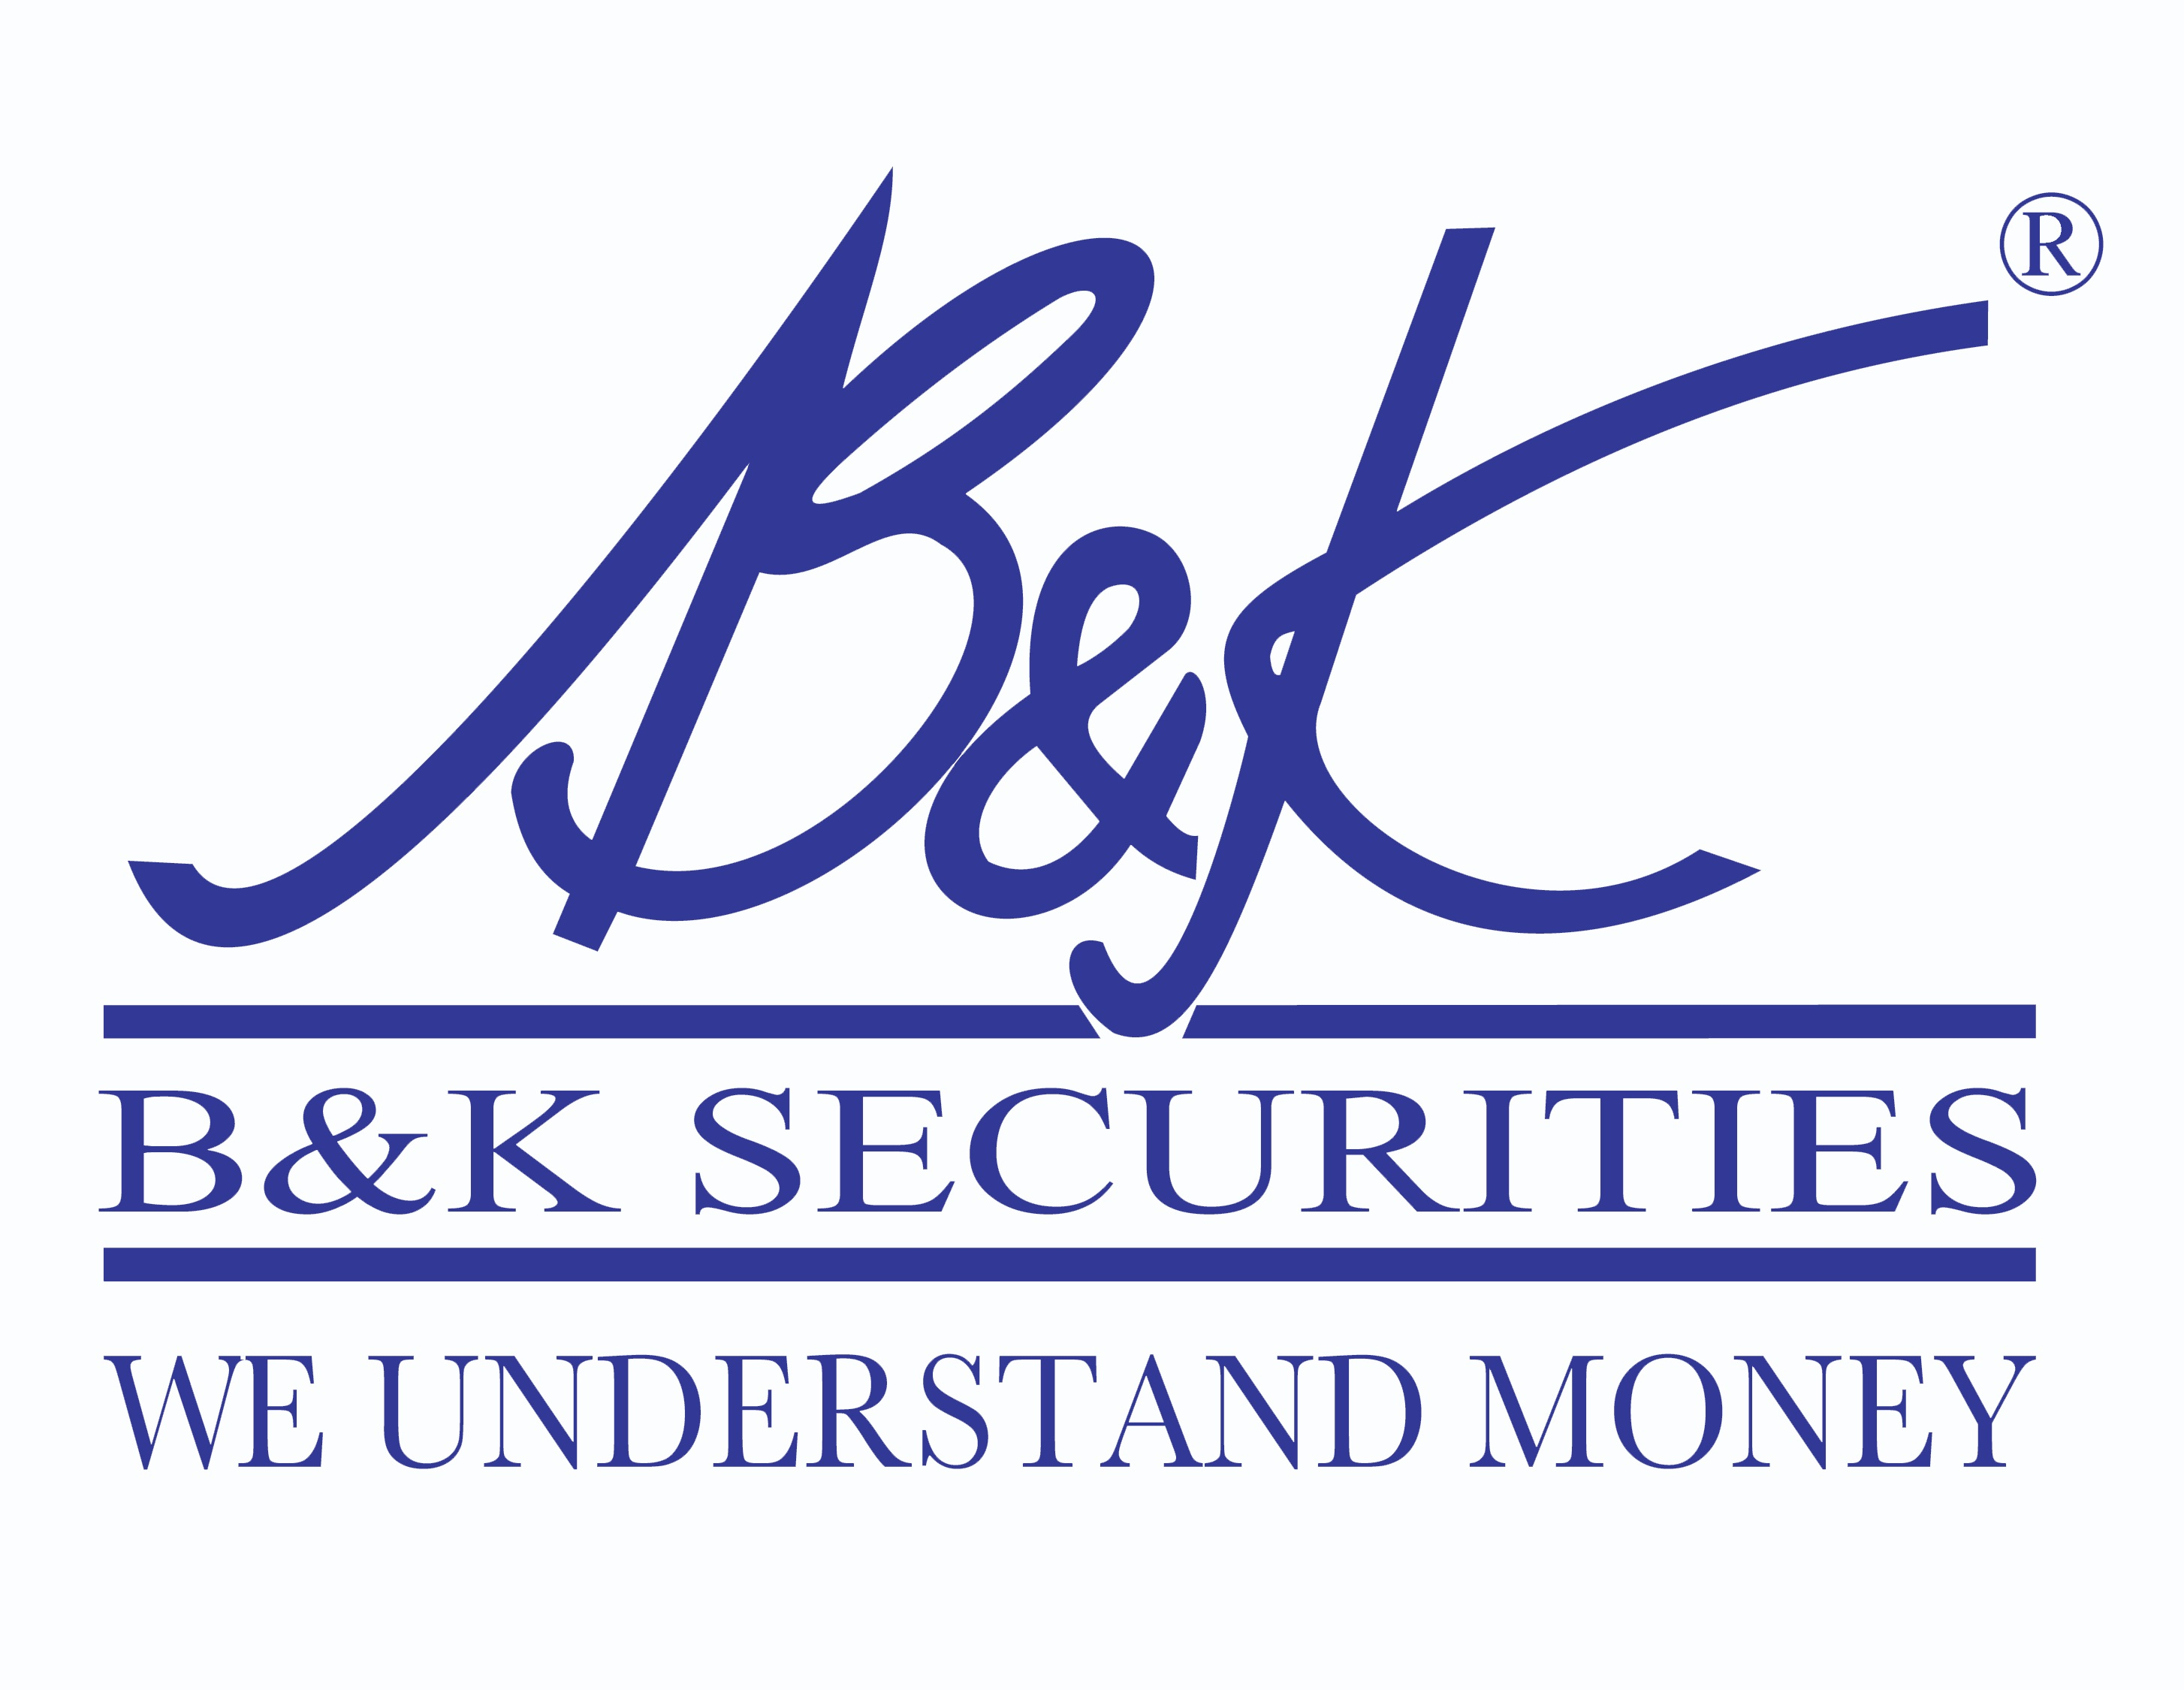 B&K Securities